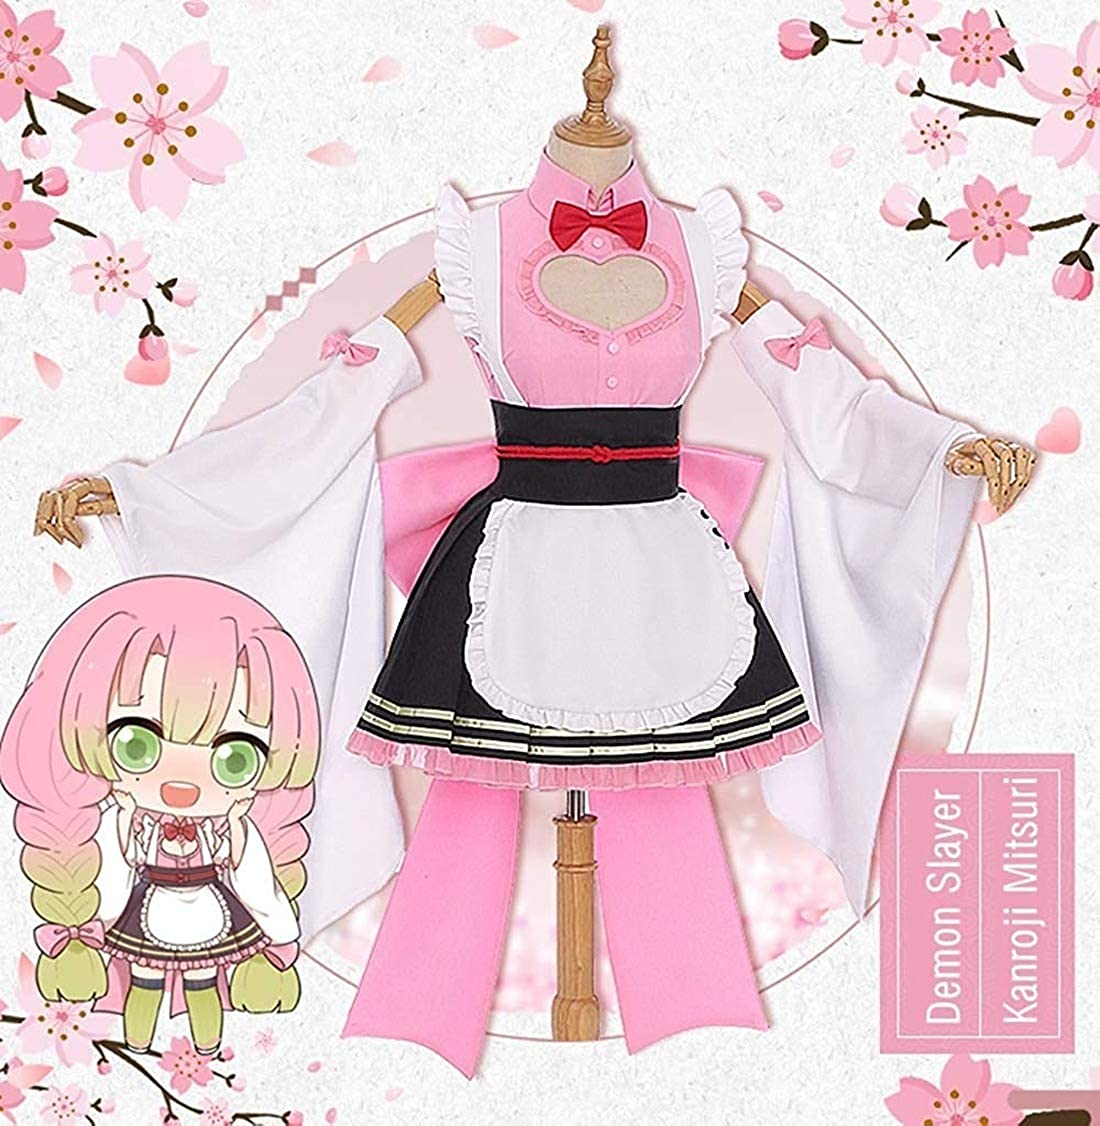 Amazon Com Demon Slayer Kimetsu No Yaiba Cosplay Kanroji Mitsuri Cosplay Costume Kimono Maid Dress Halloween Costume Full Set Clothing Kimetsu no yaiba is a japanese manga series written and illustrated by koyoharu gotōge. demon slayer kimetsu no yaiba cosplay